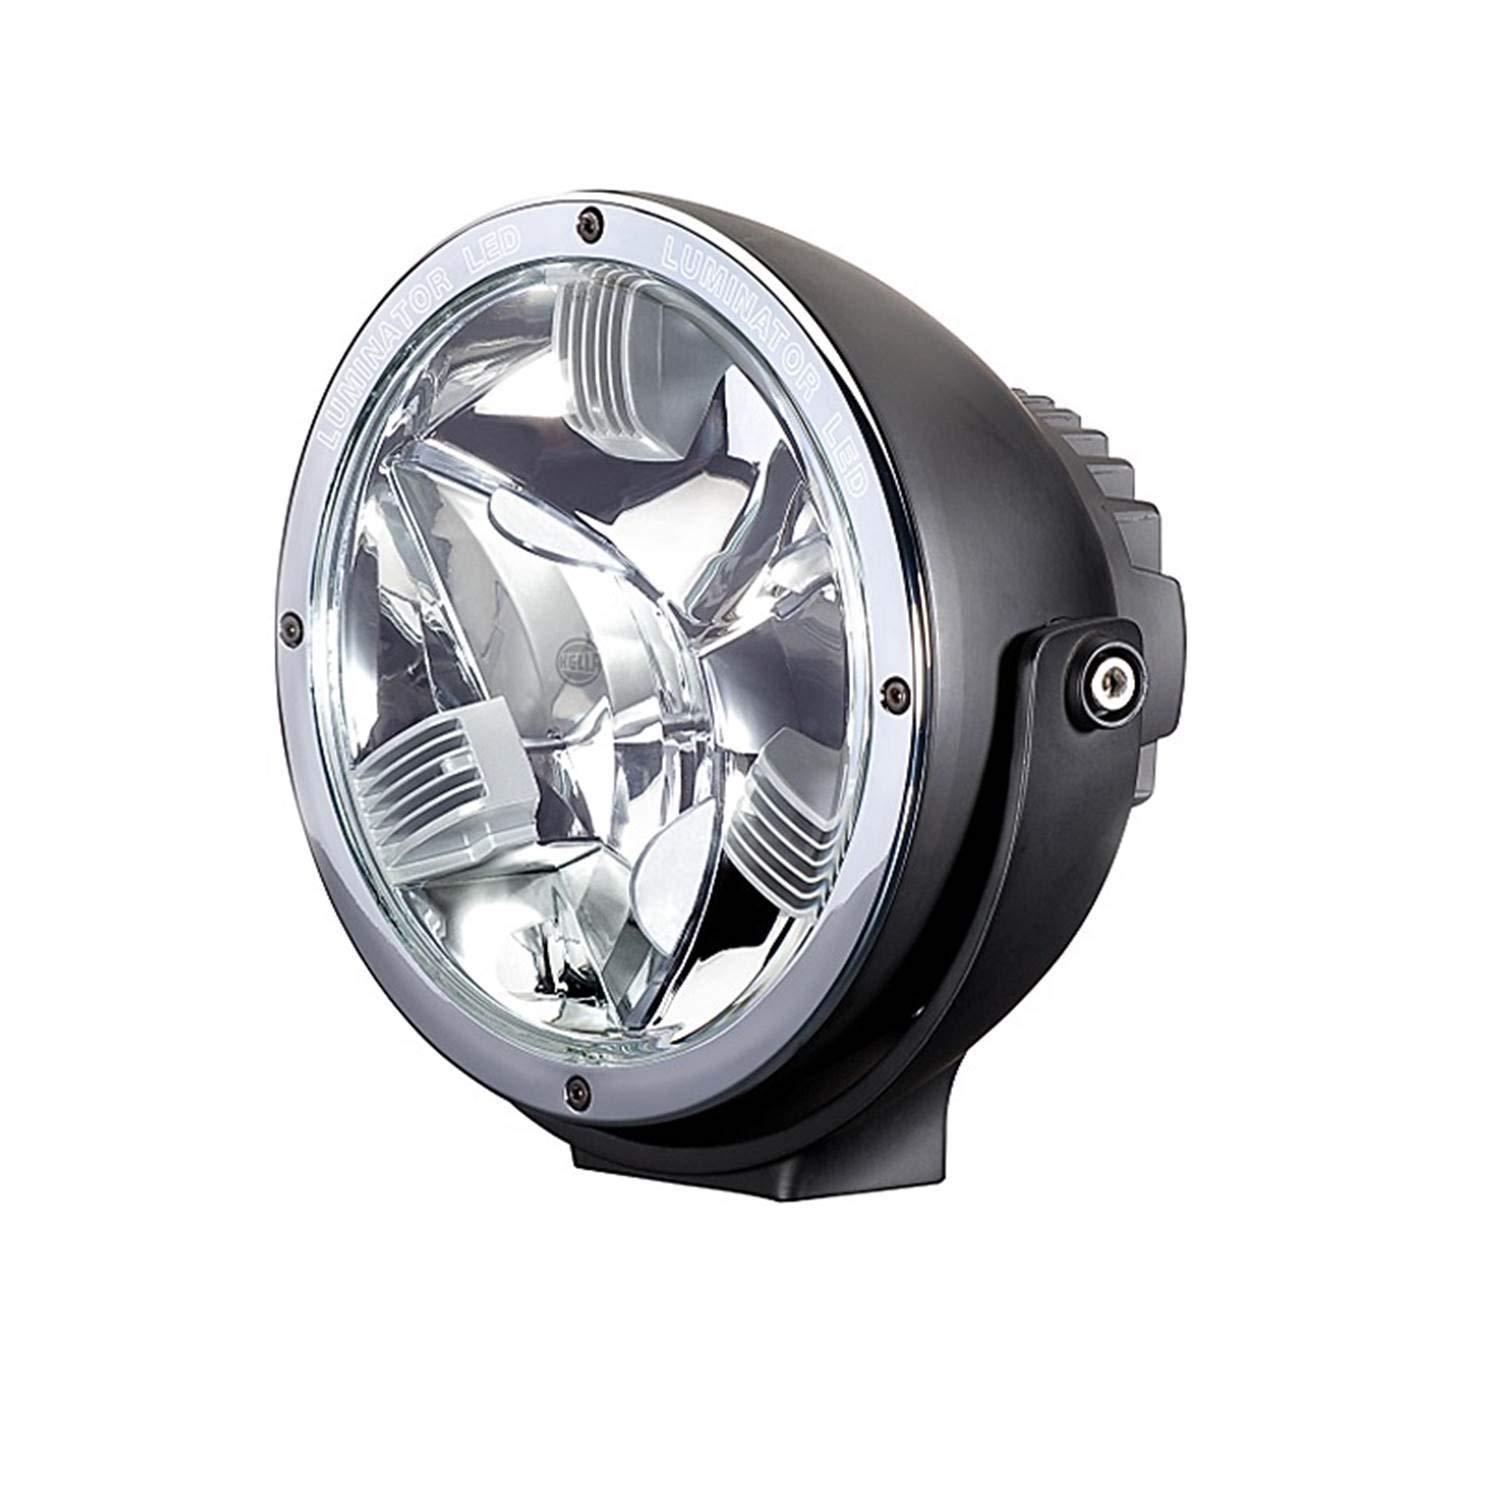 HELLA 011002001 Rallye 4000 LED Driving Lamp With Chrome Ring